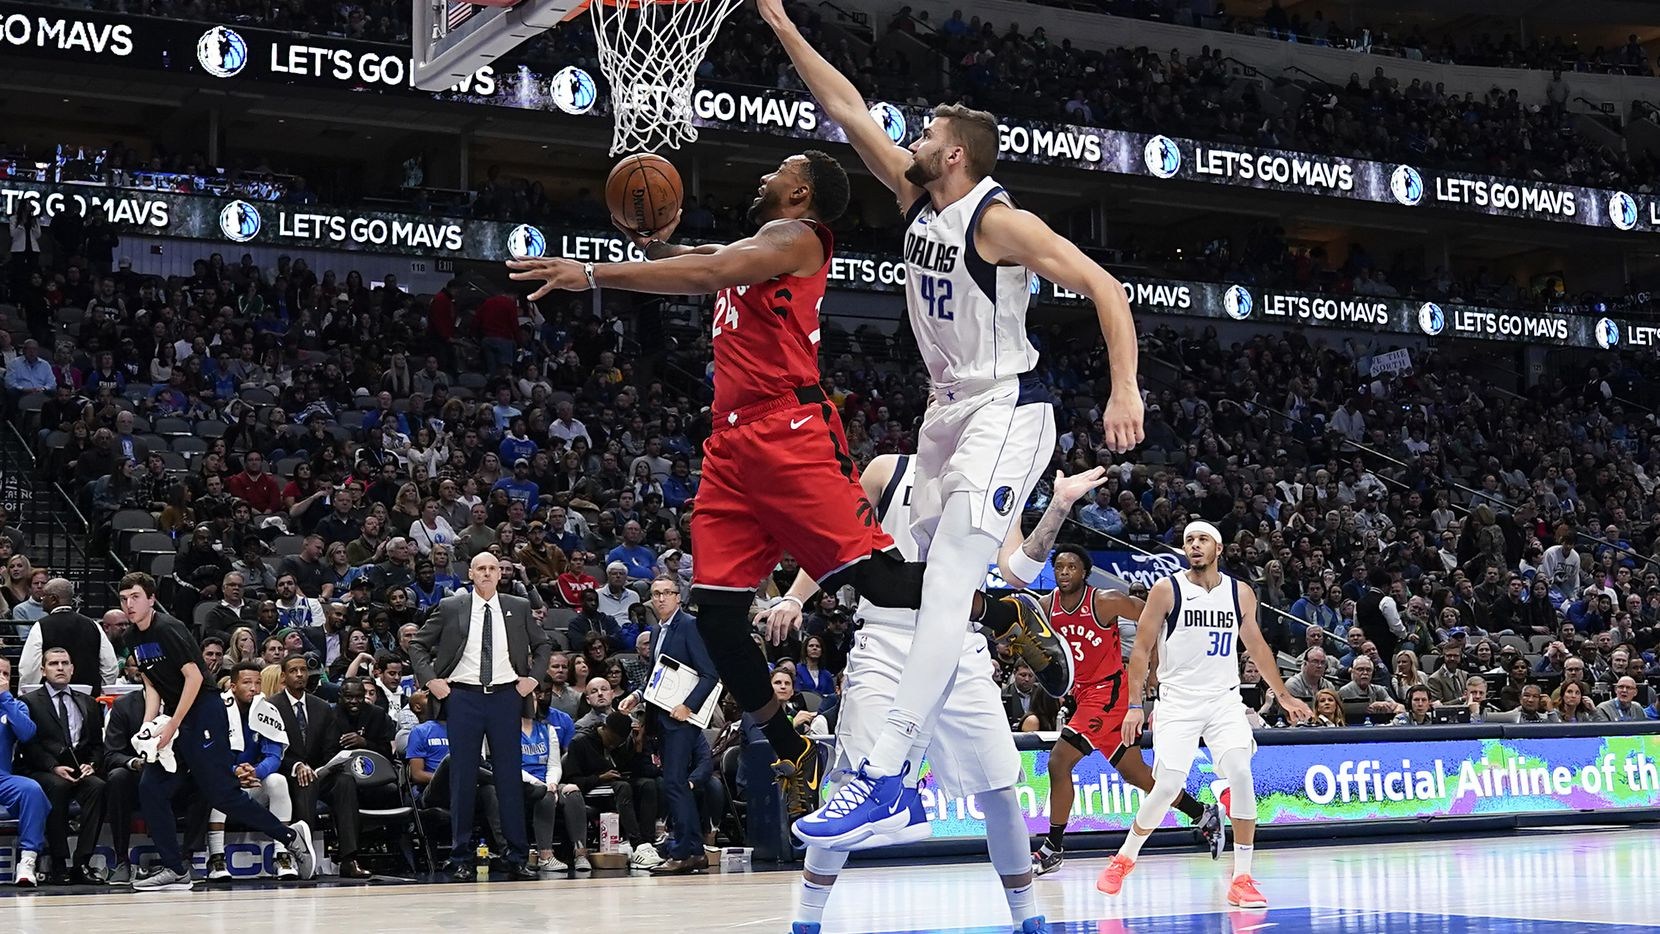 Toronto Raptors guard Norman Powell (24) drives to the basket past Dallas Mavericks center Maxi Kleber (42) during the second half of an NBA basketball game at American Airlines Center on Saturday, Nov. 16, 2019, in Dallas.